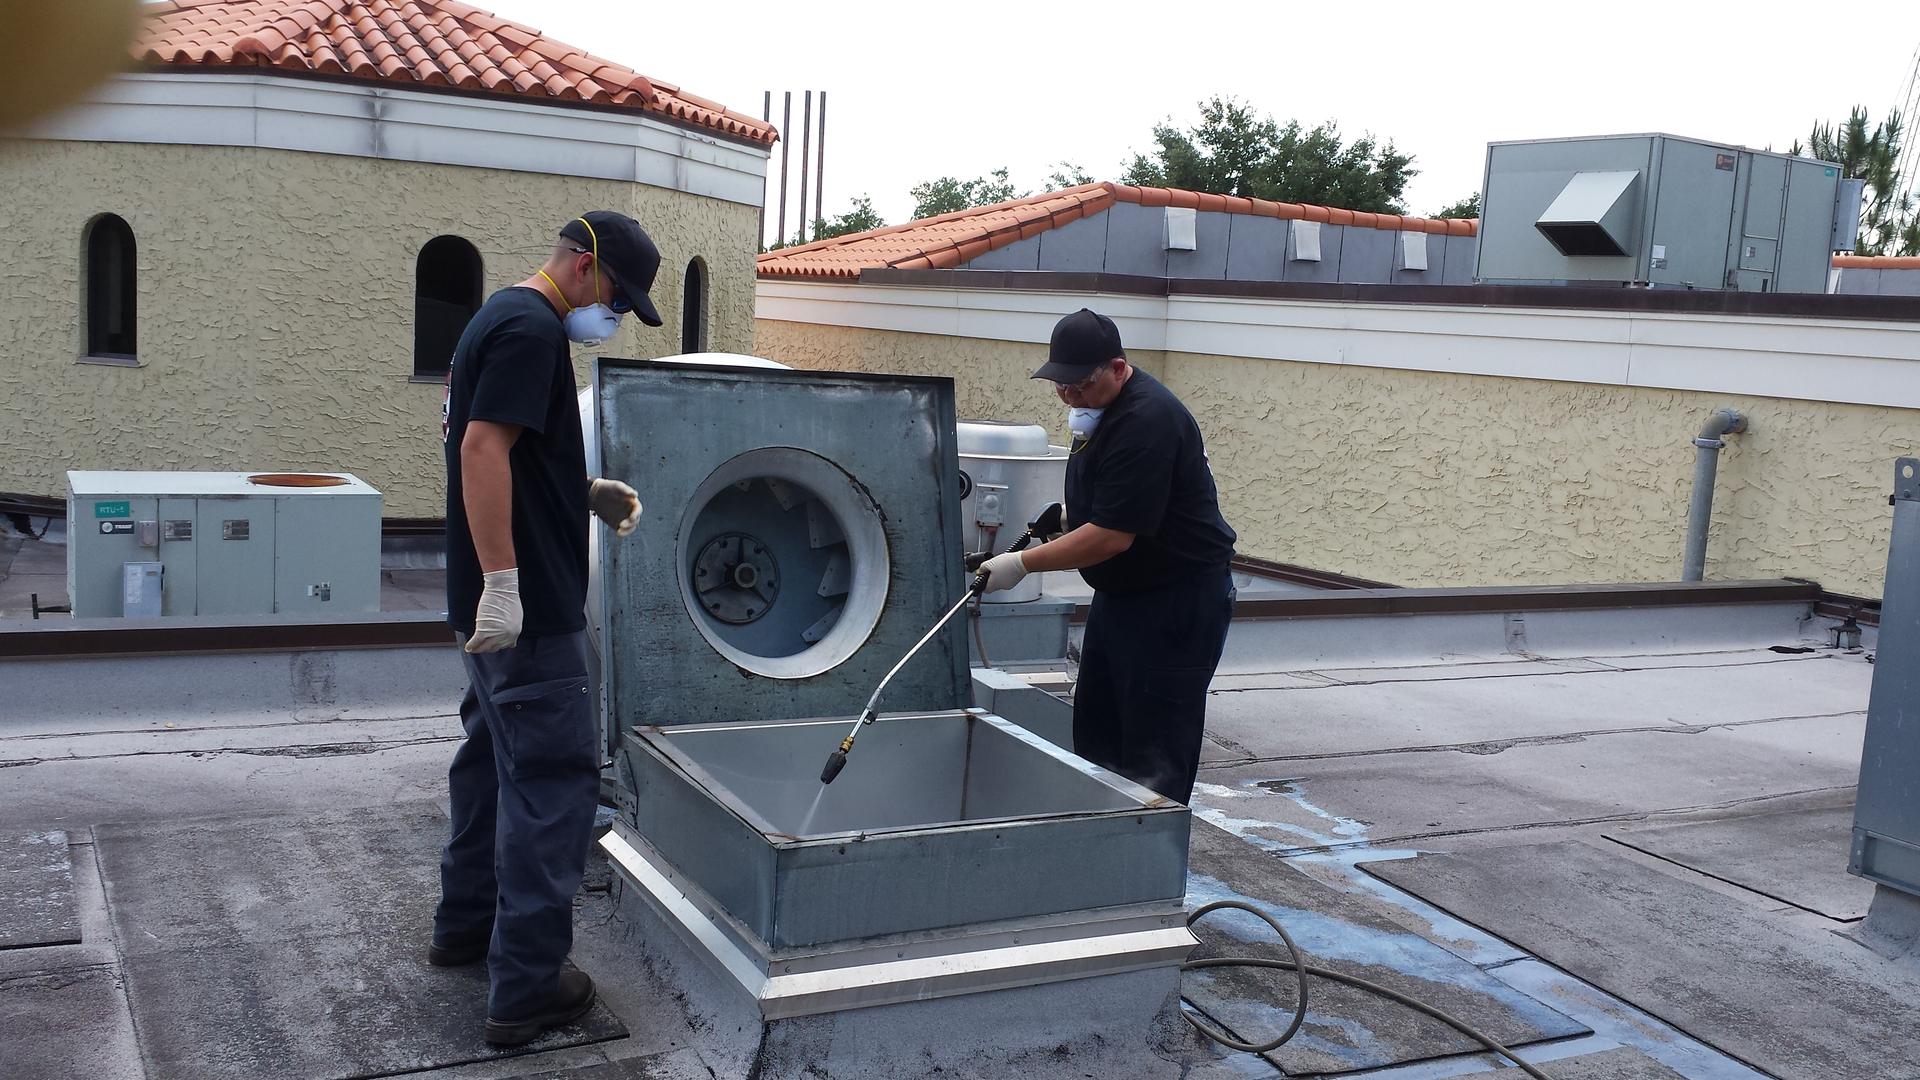 hood commercial kitchen jacksonville equipment service cleaning services fl